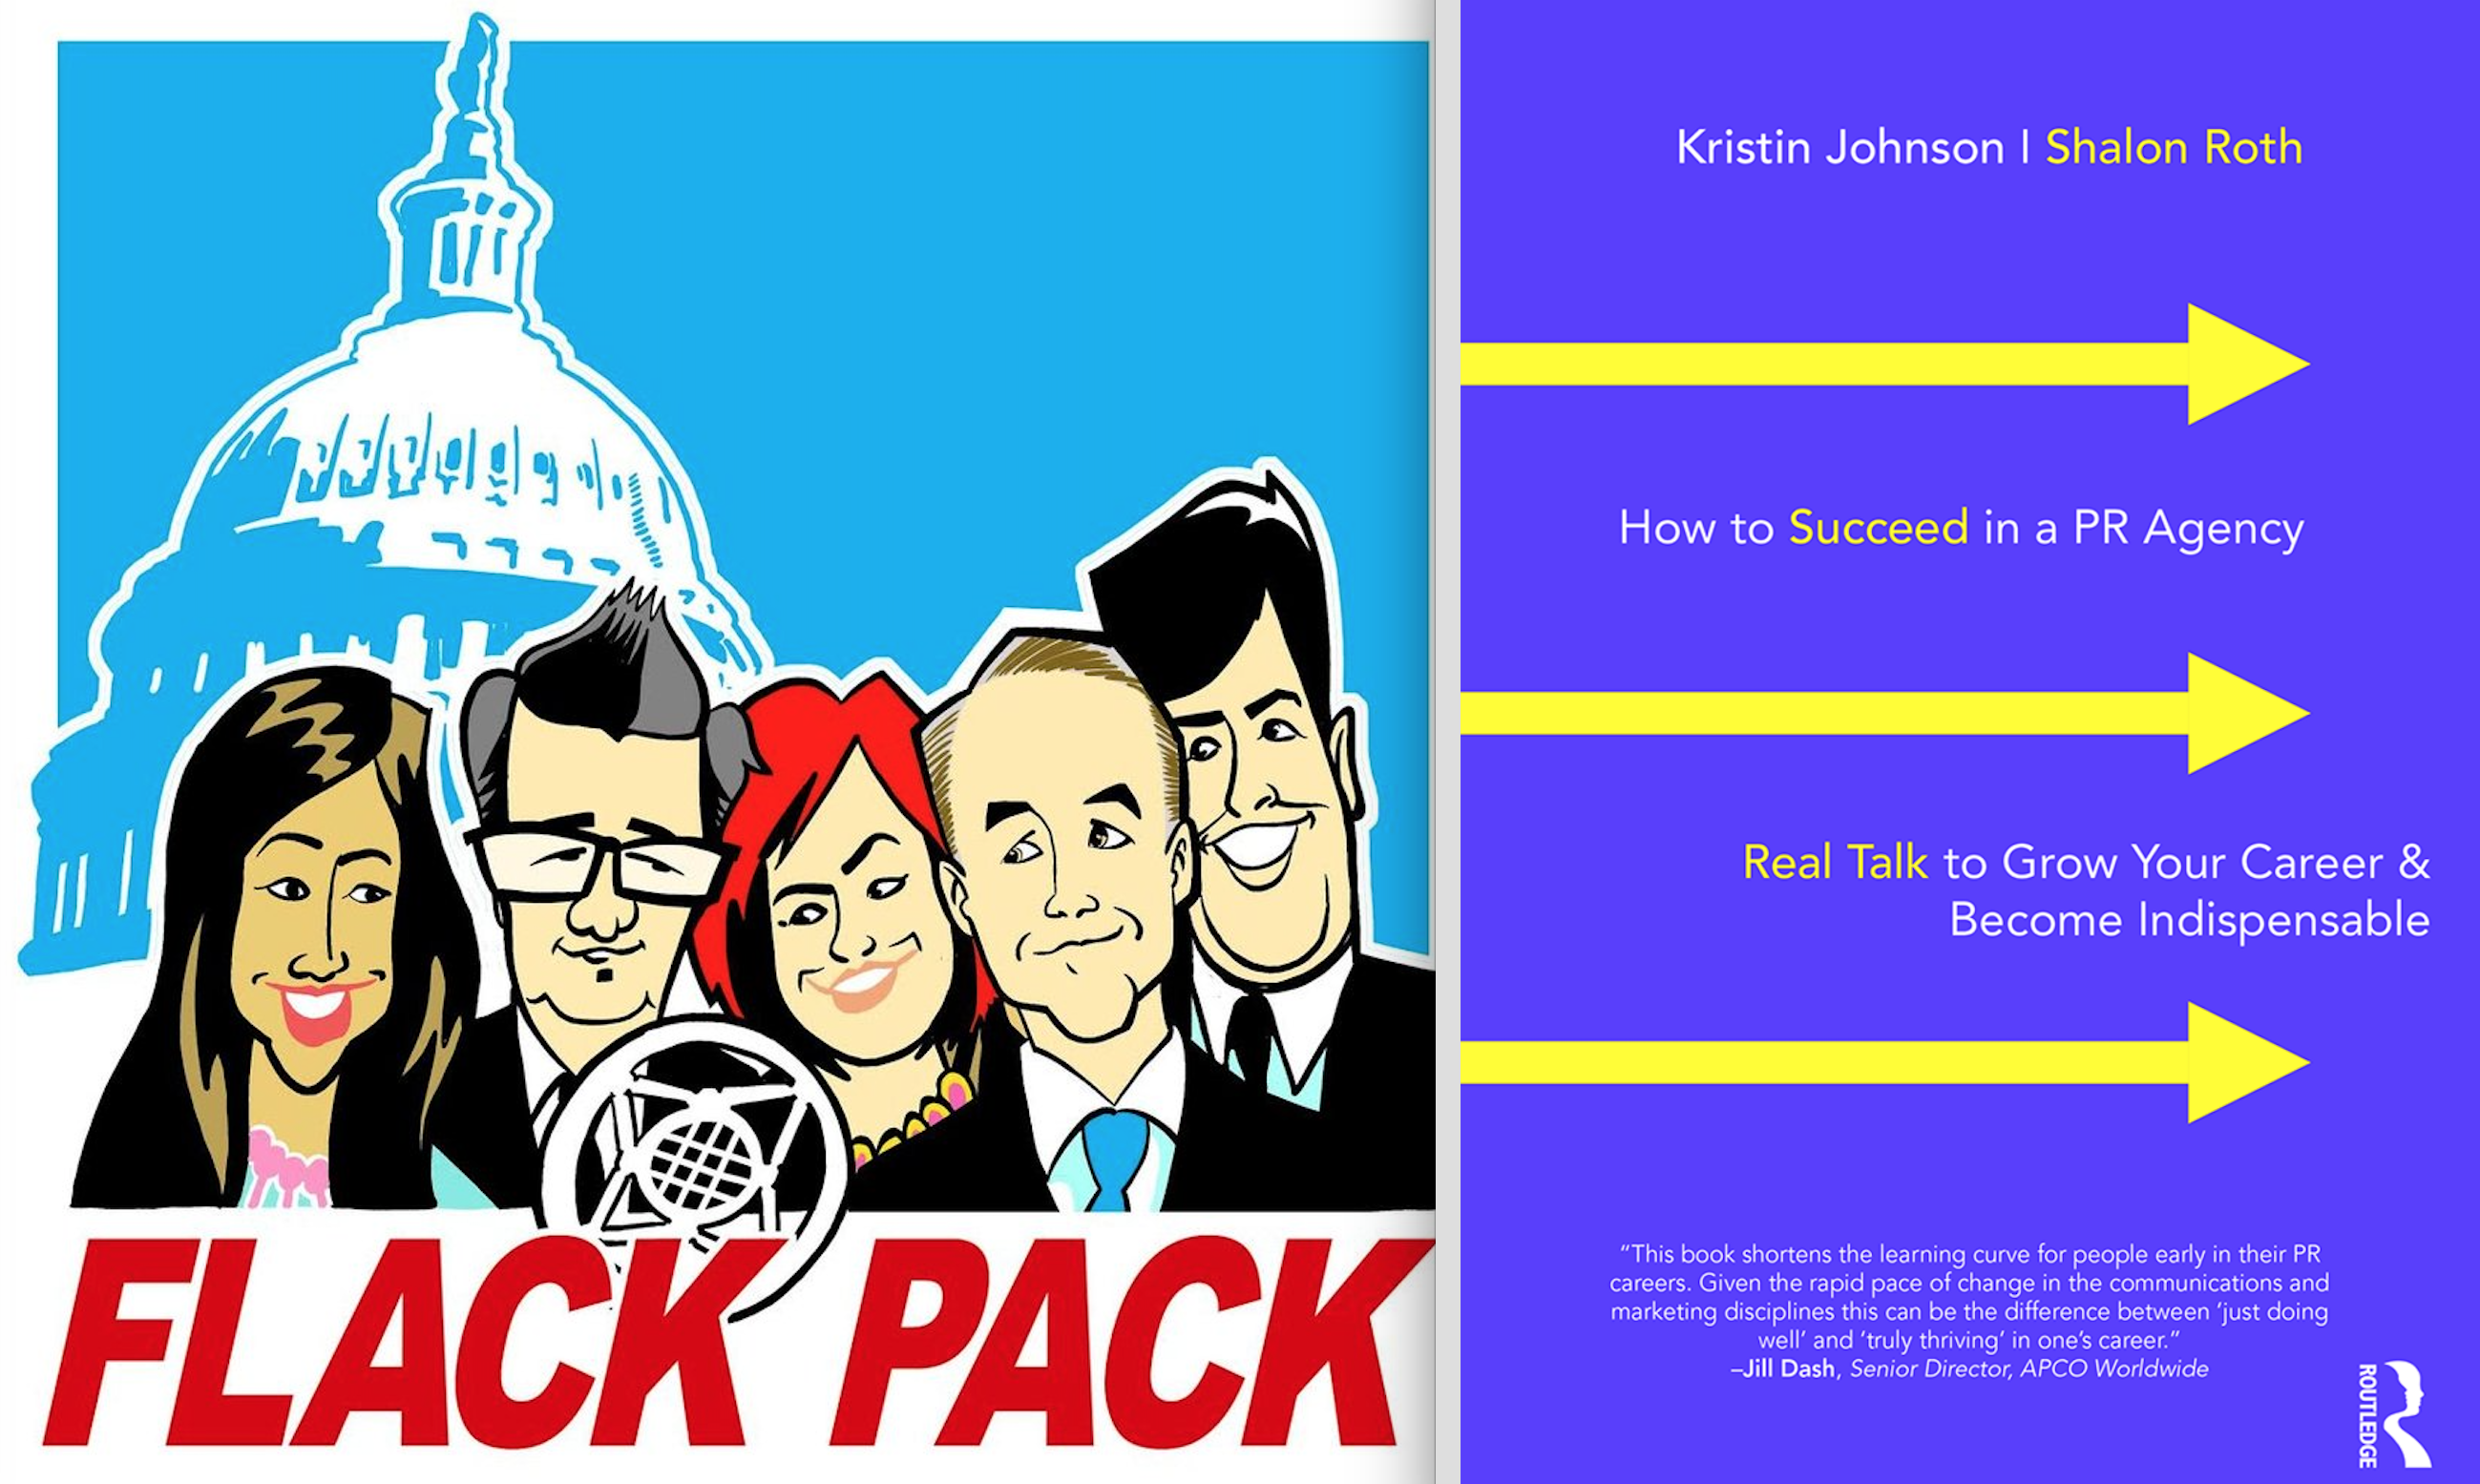 Kristin Johnson Featured on Podcast 'Flack Pack'